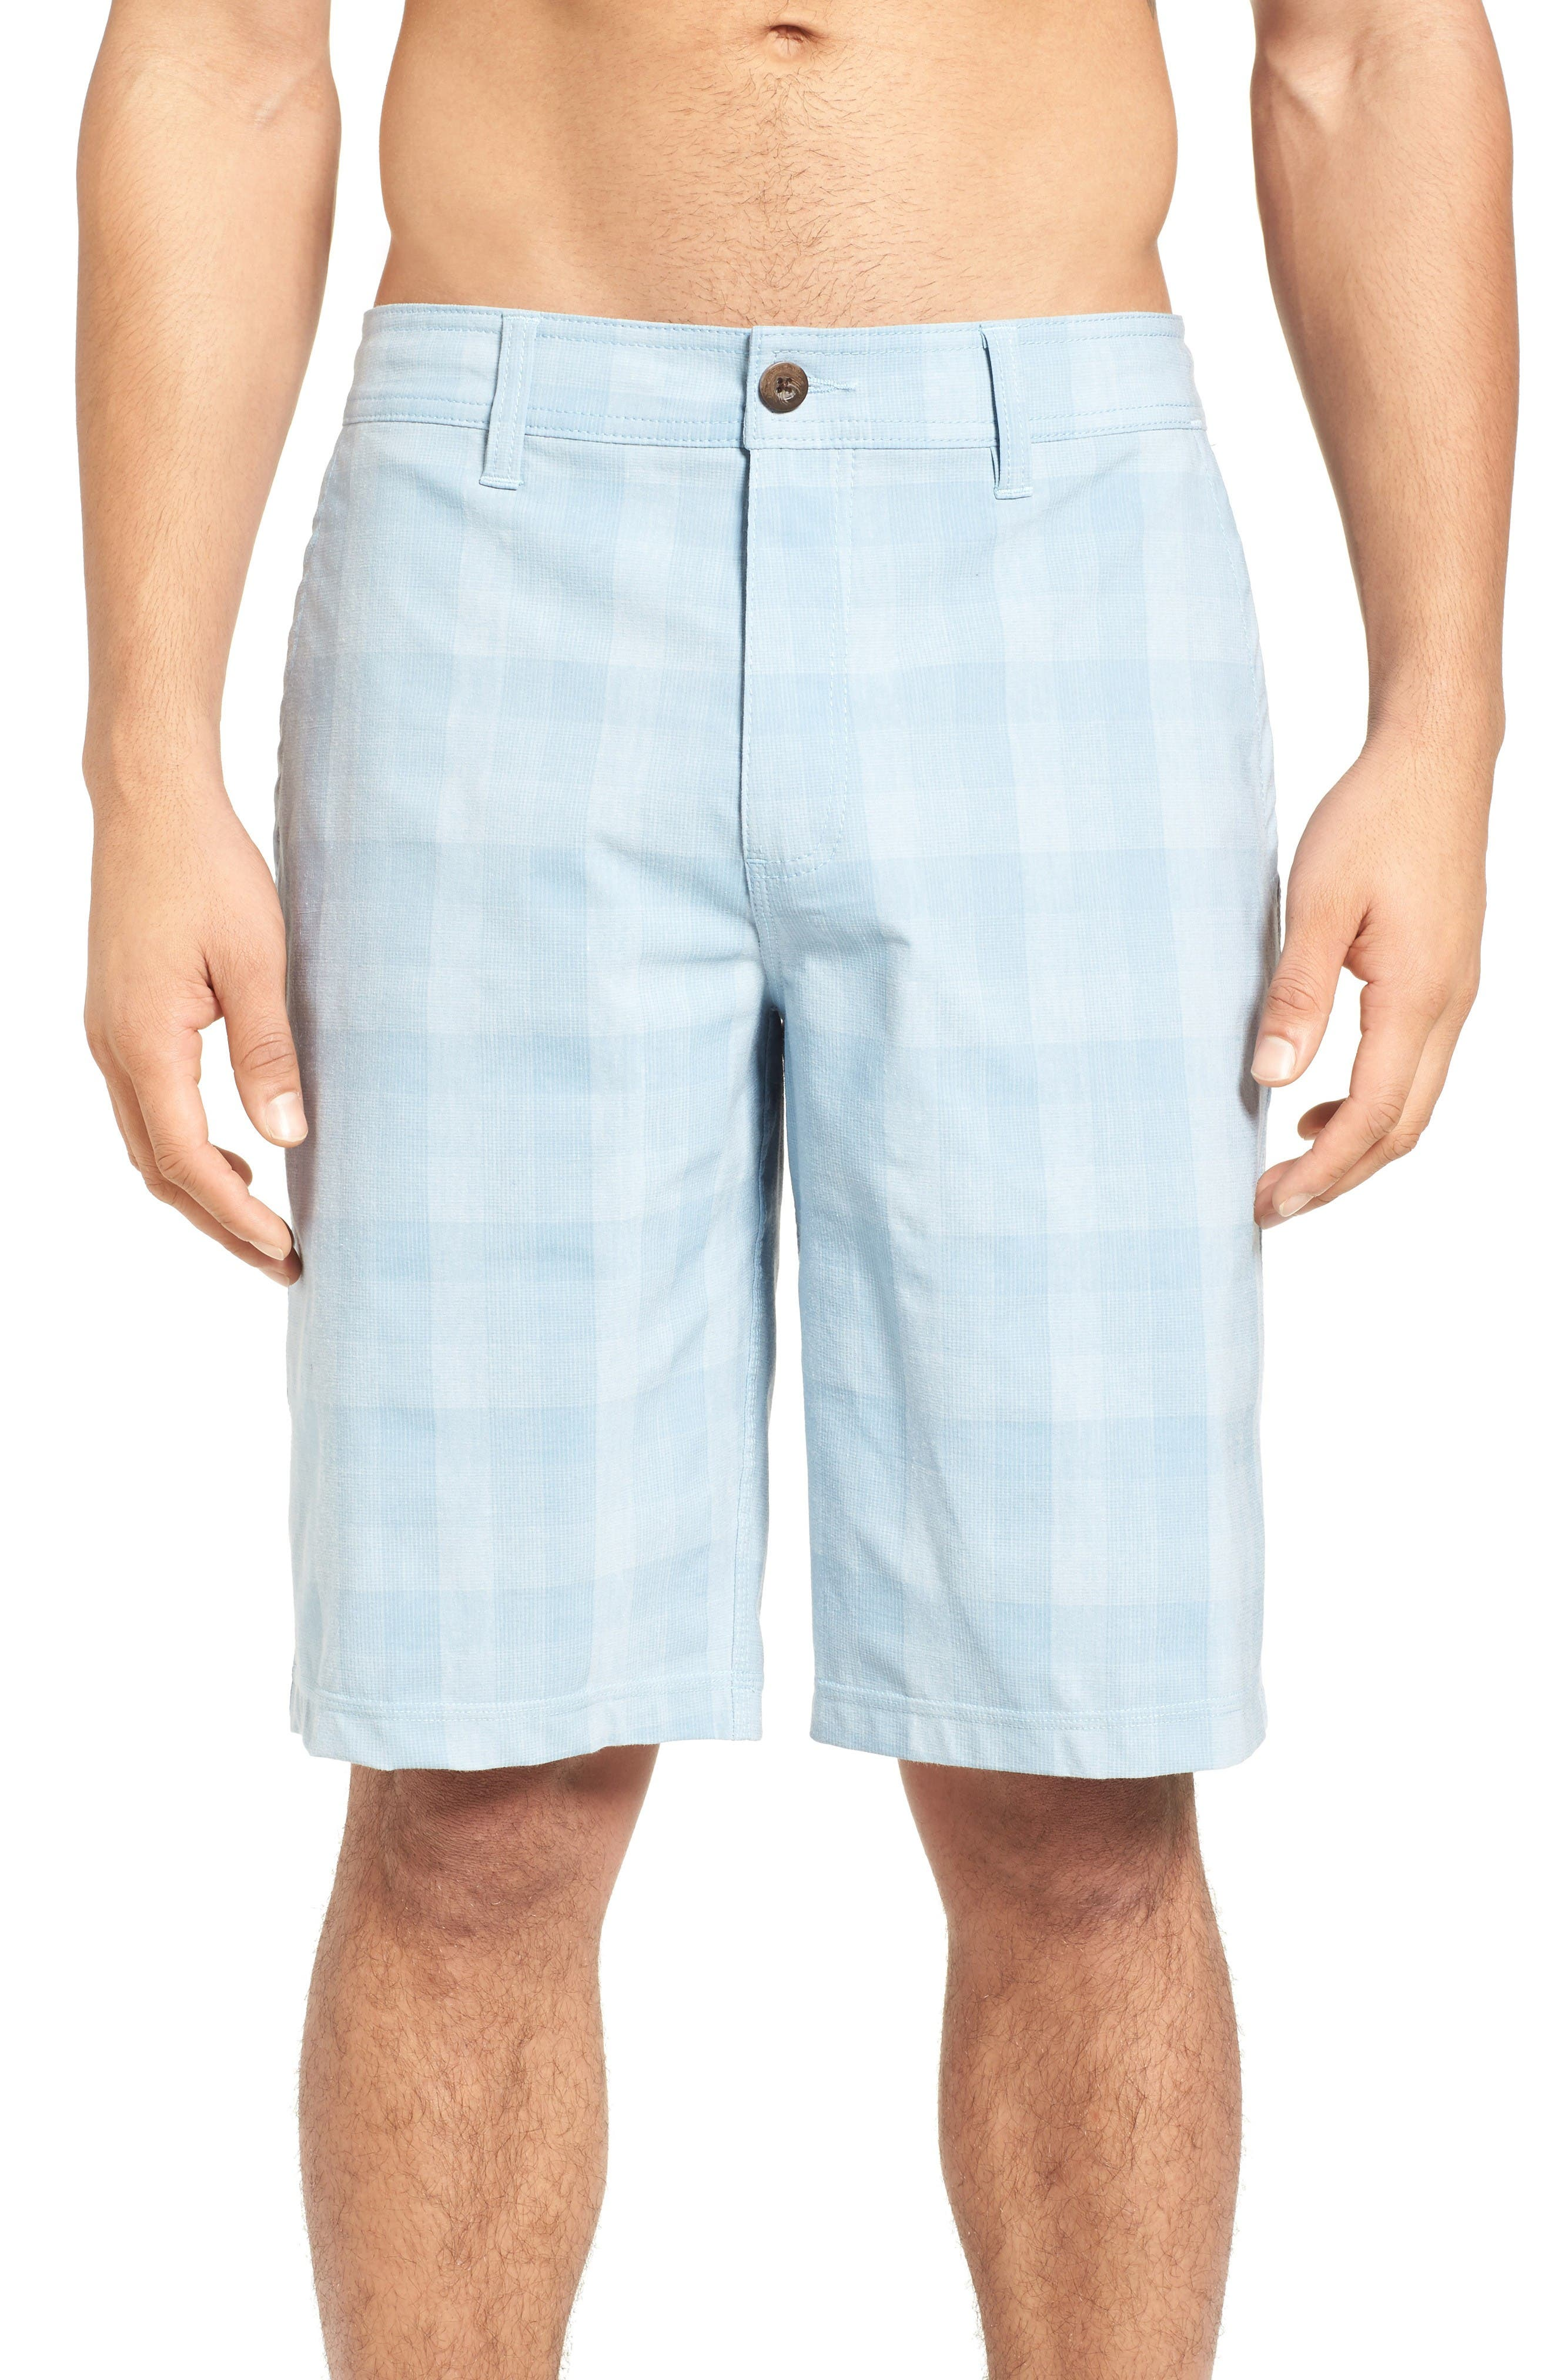 Rally Stretch Board Shorts,                         Main,                         color, Blue